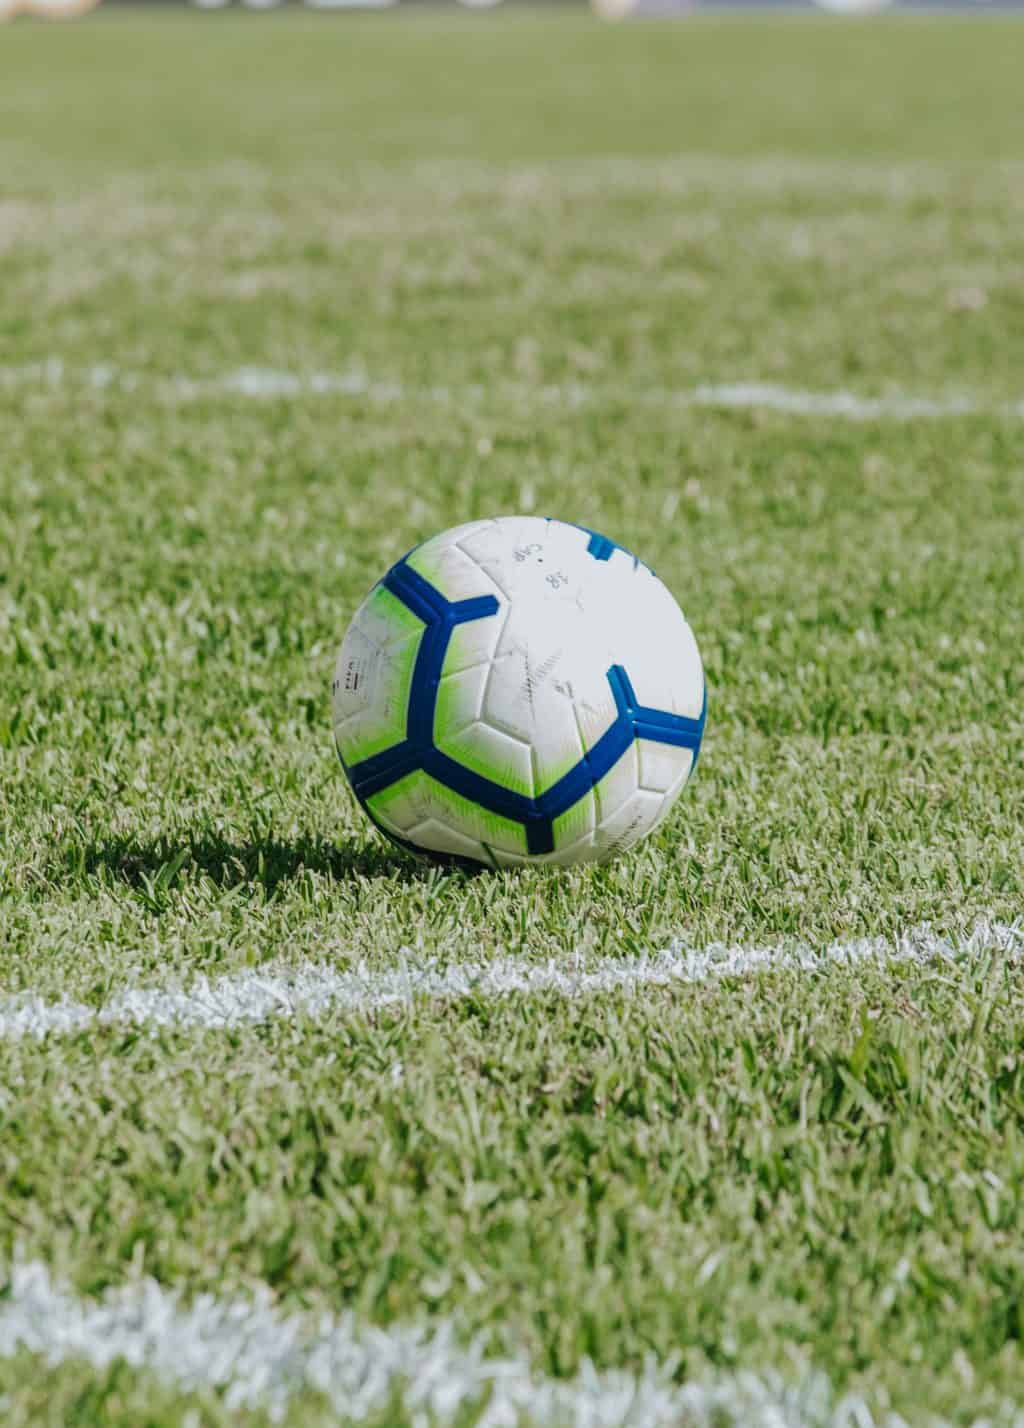 A soccer ball in the middle of the field